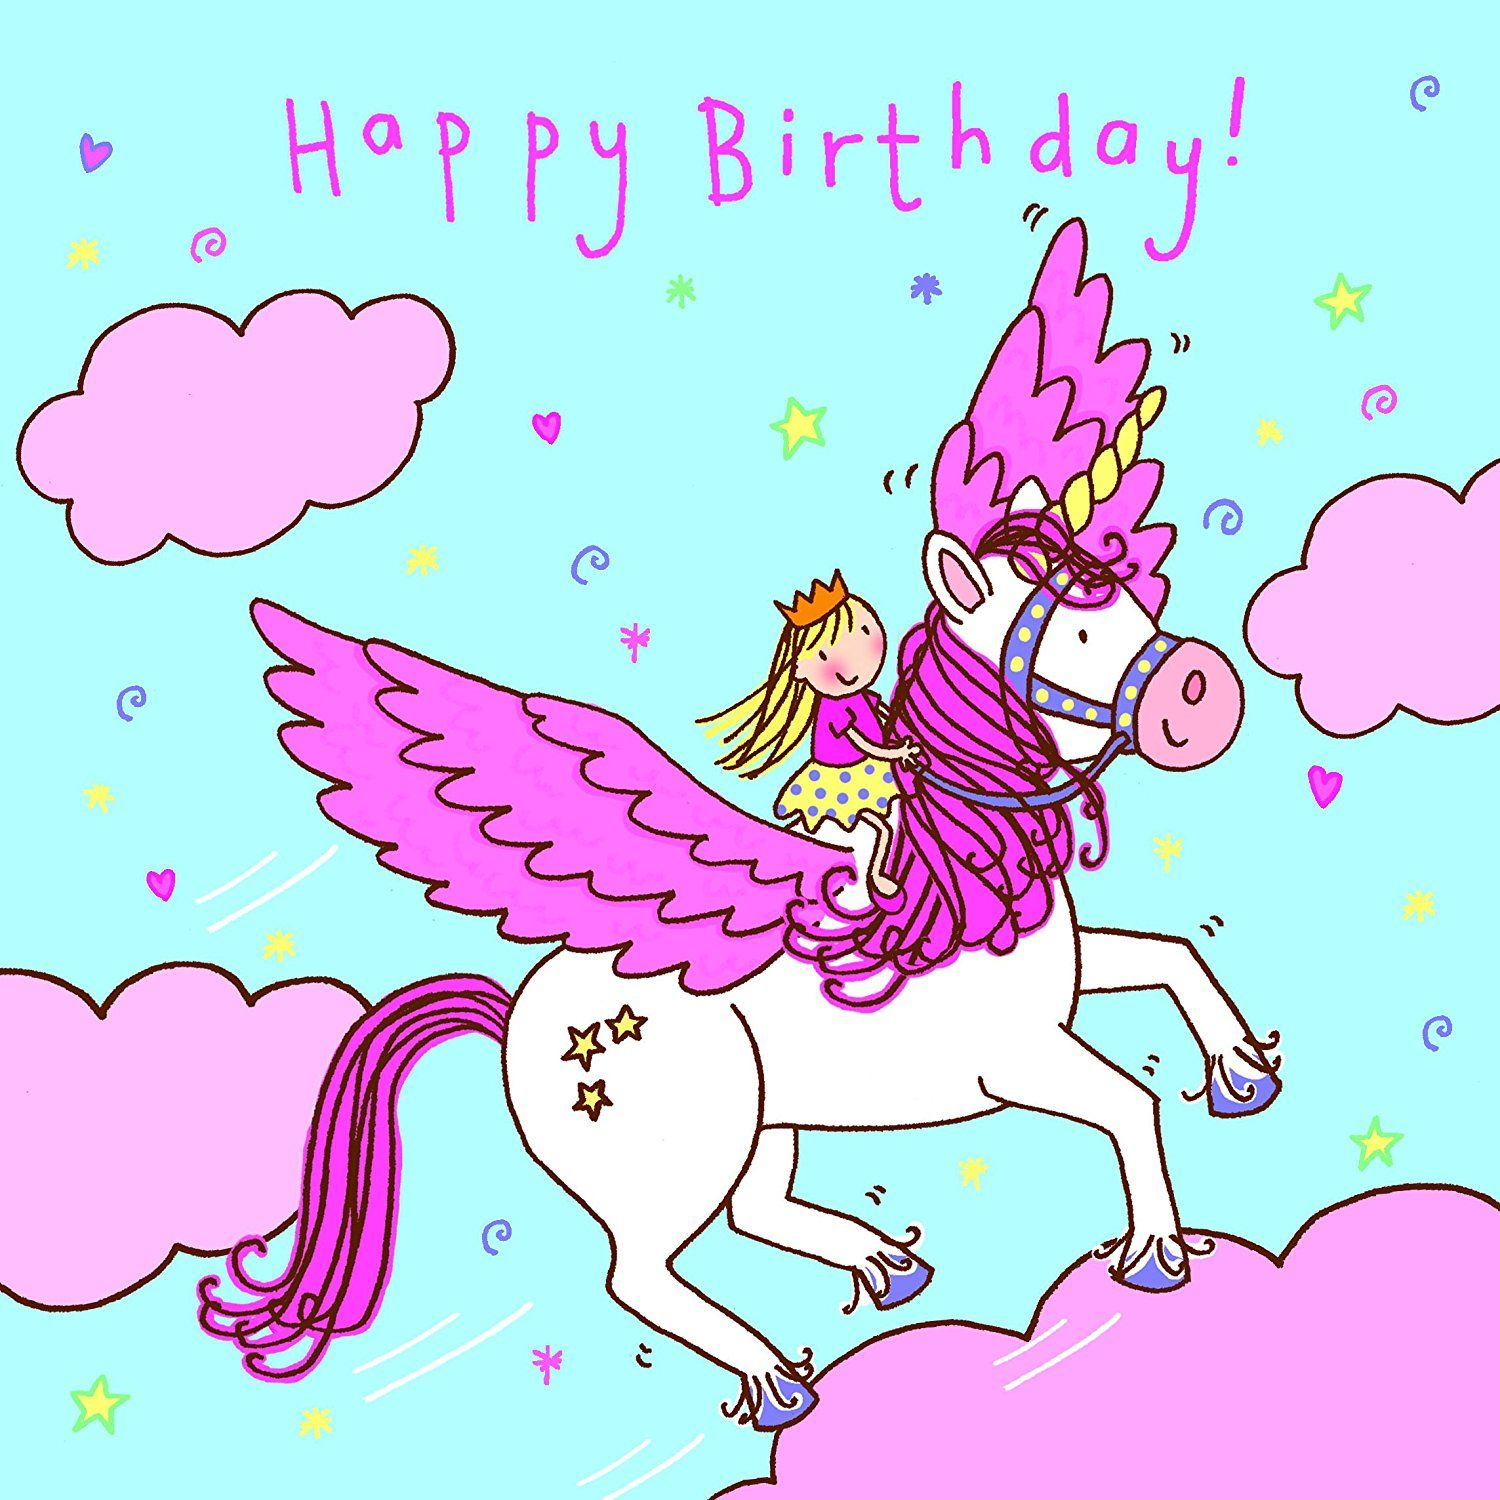 Twizler Happy Birthday Card for Girl Flying Unicorn Clouds and – Birthday Cards for Girl